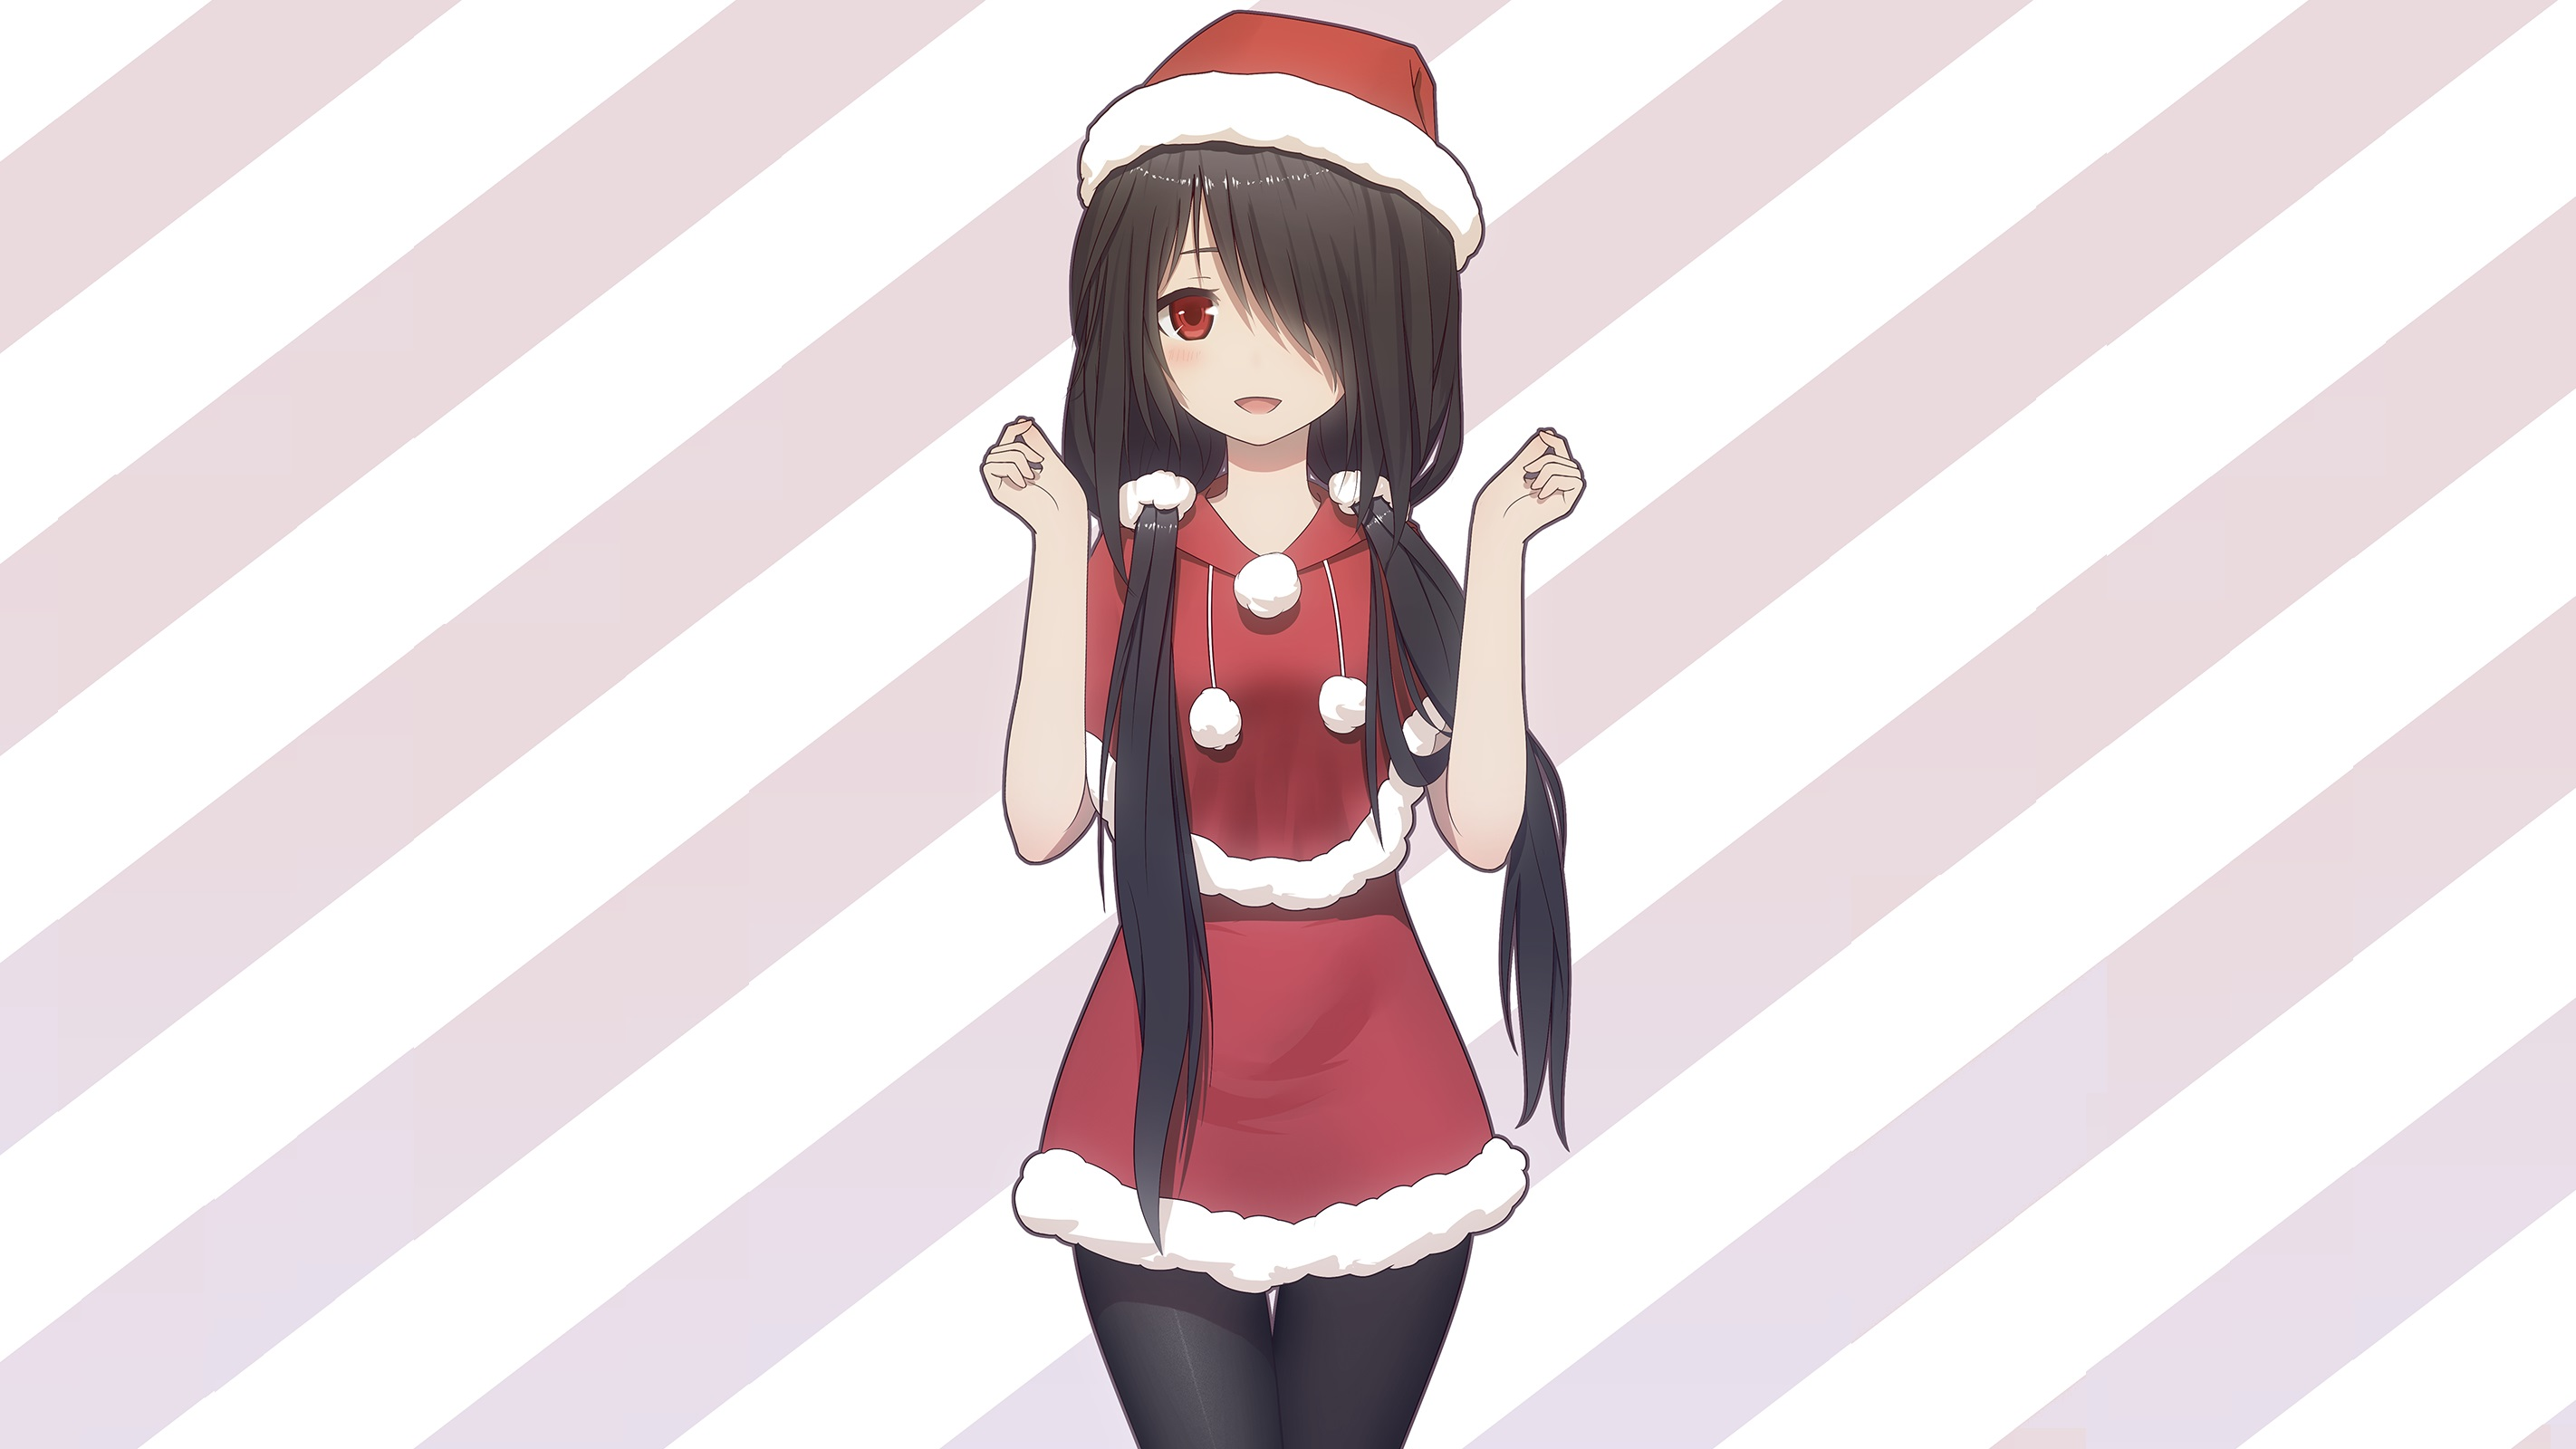 Cute anime girl christmas wallpapers hd - Cute anime girl pictures ...